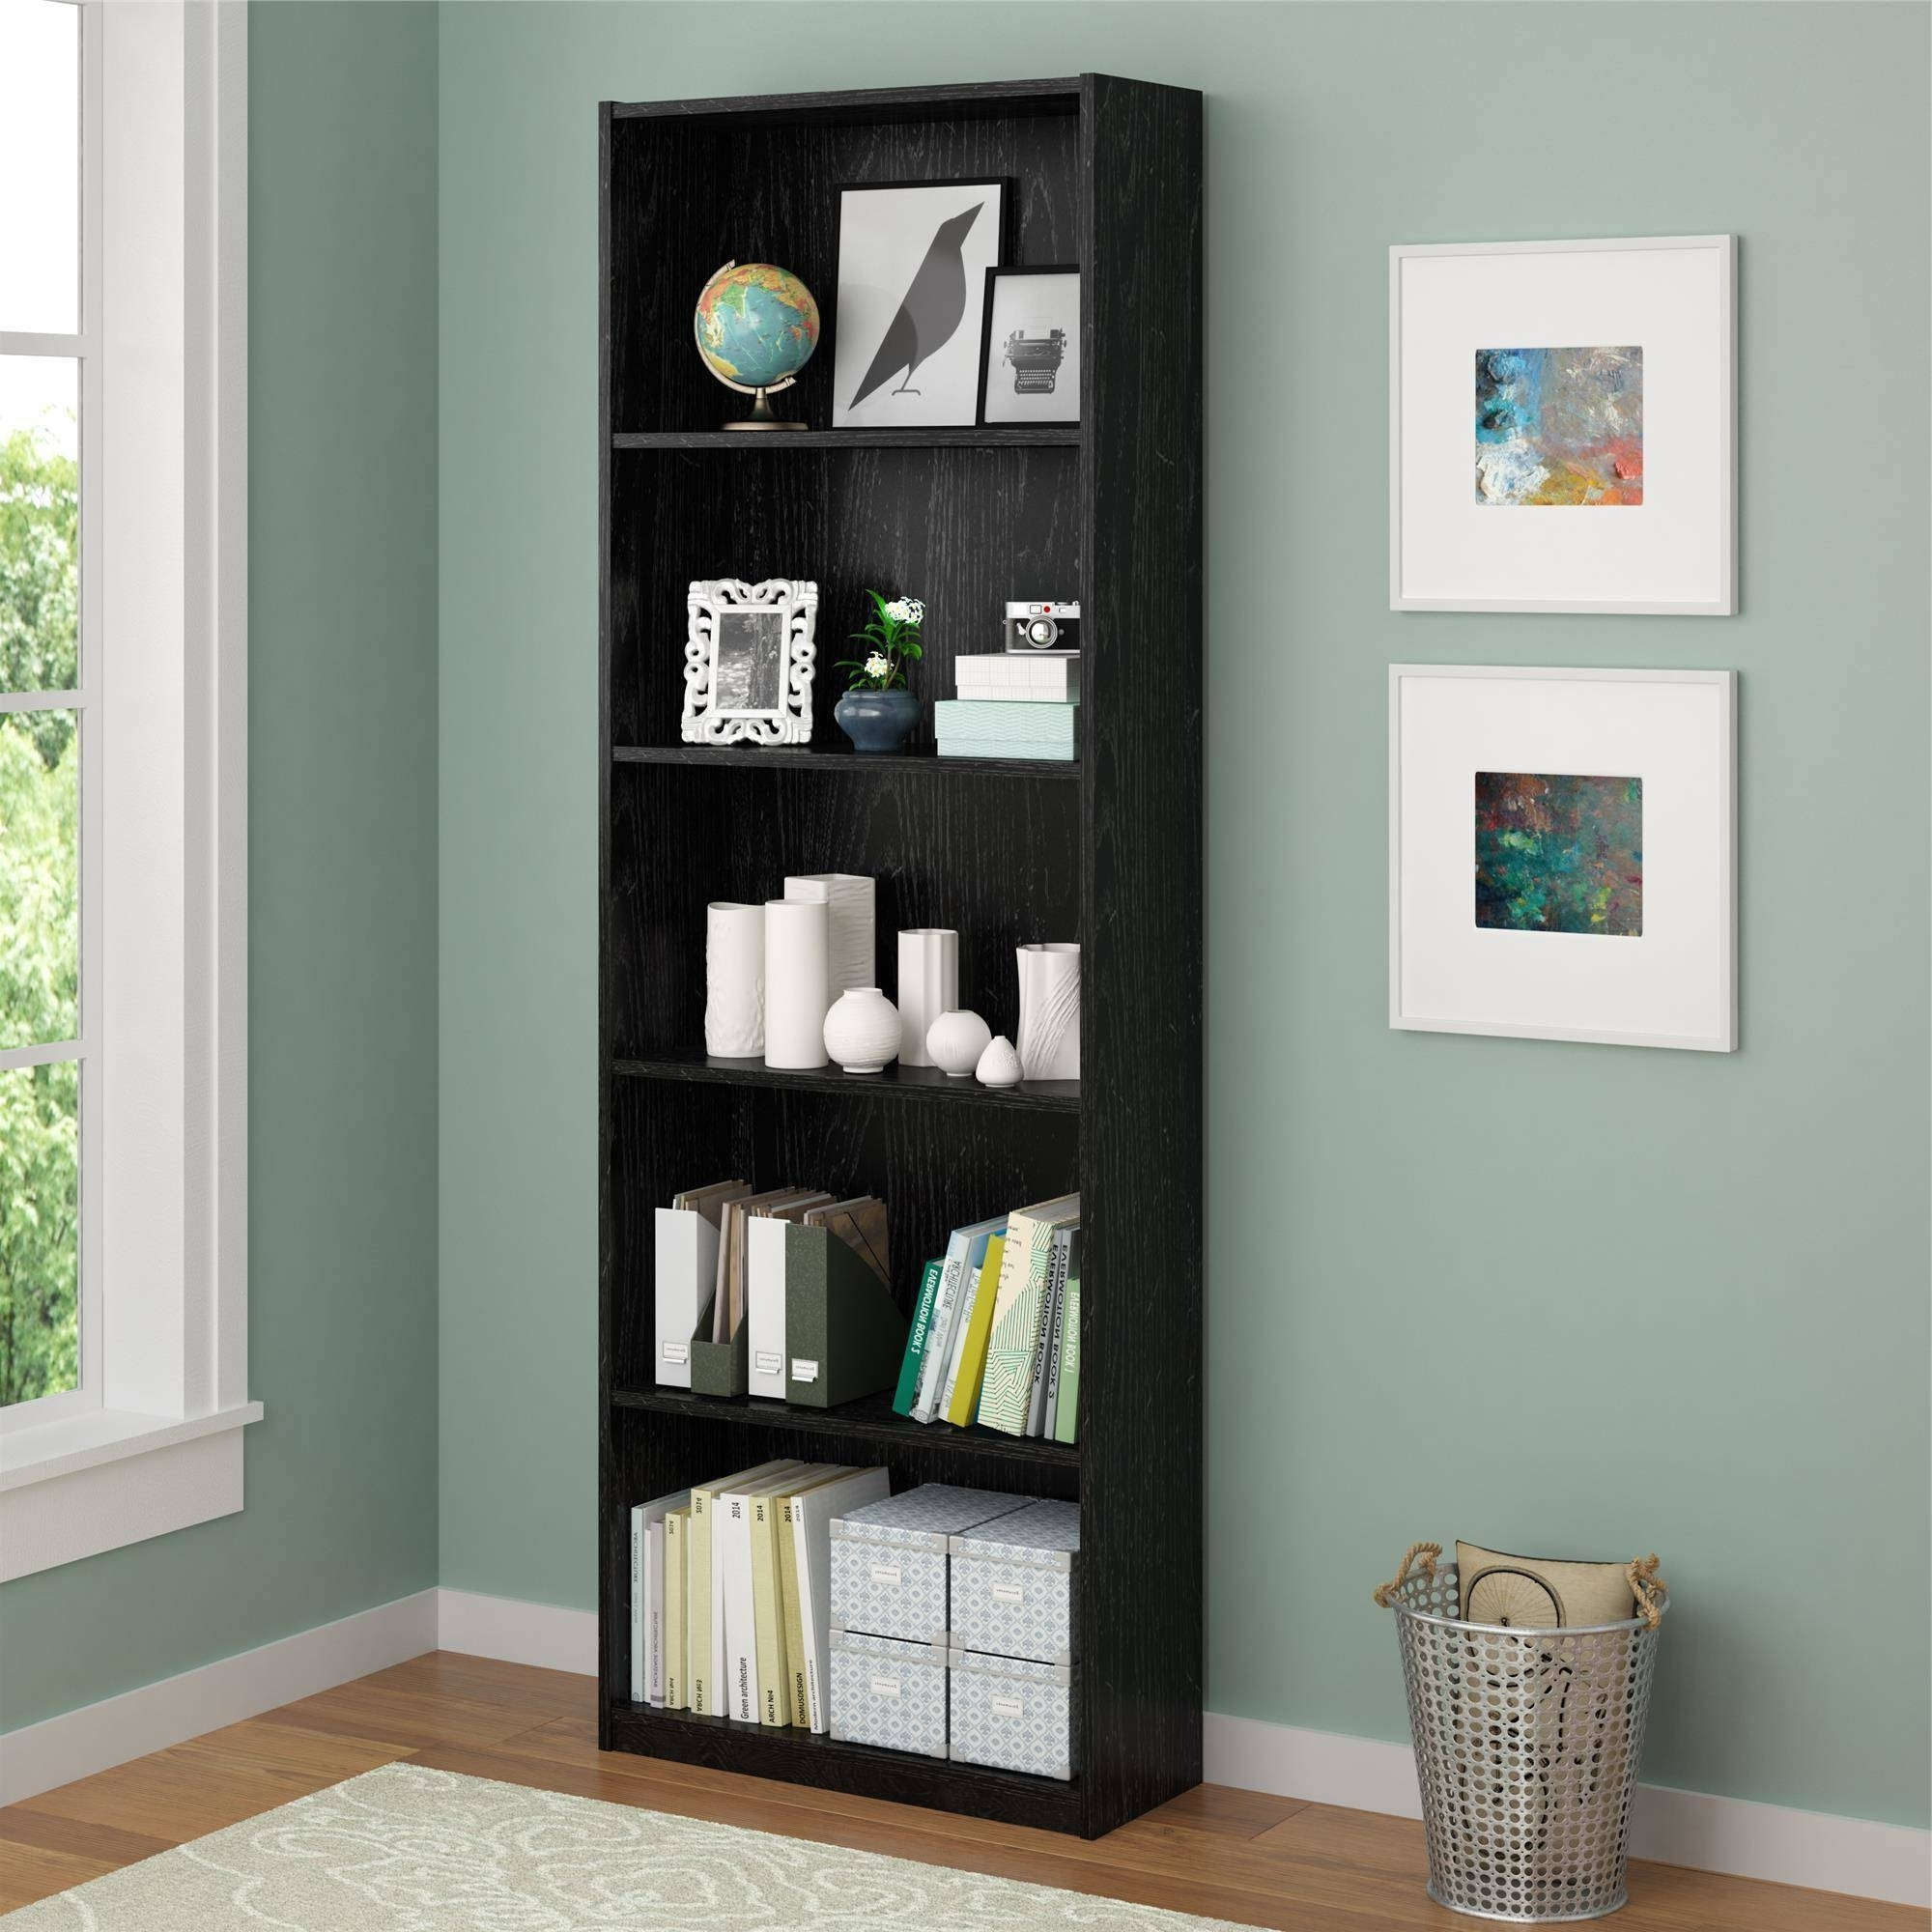 Best And Newest Black Bookcases Walmart Inside Ameriwood 5 Shelf Bookcases, Set Of 2 (Mix And Match) – Walmart (View 4 of 15)